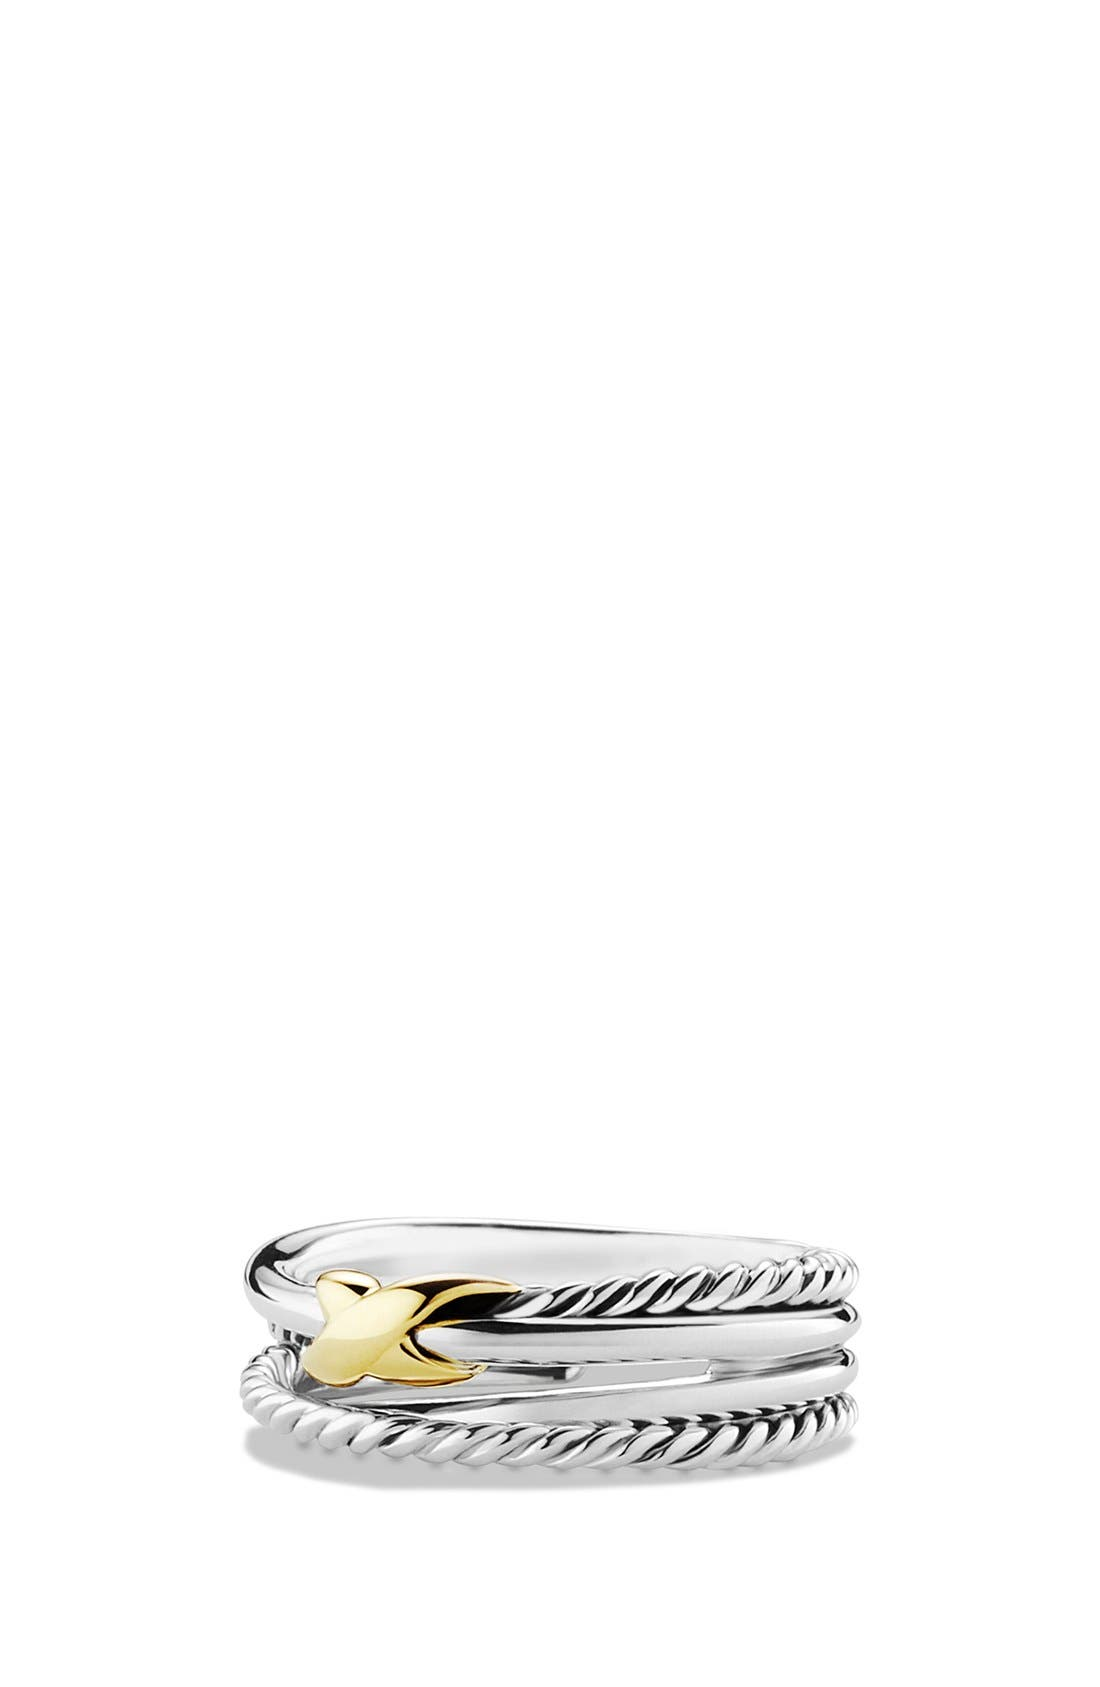 David Yurman 'X Crossover' Ring